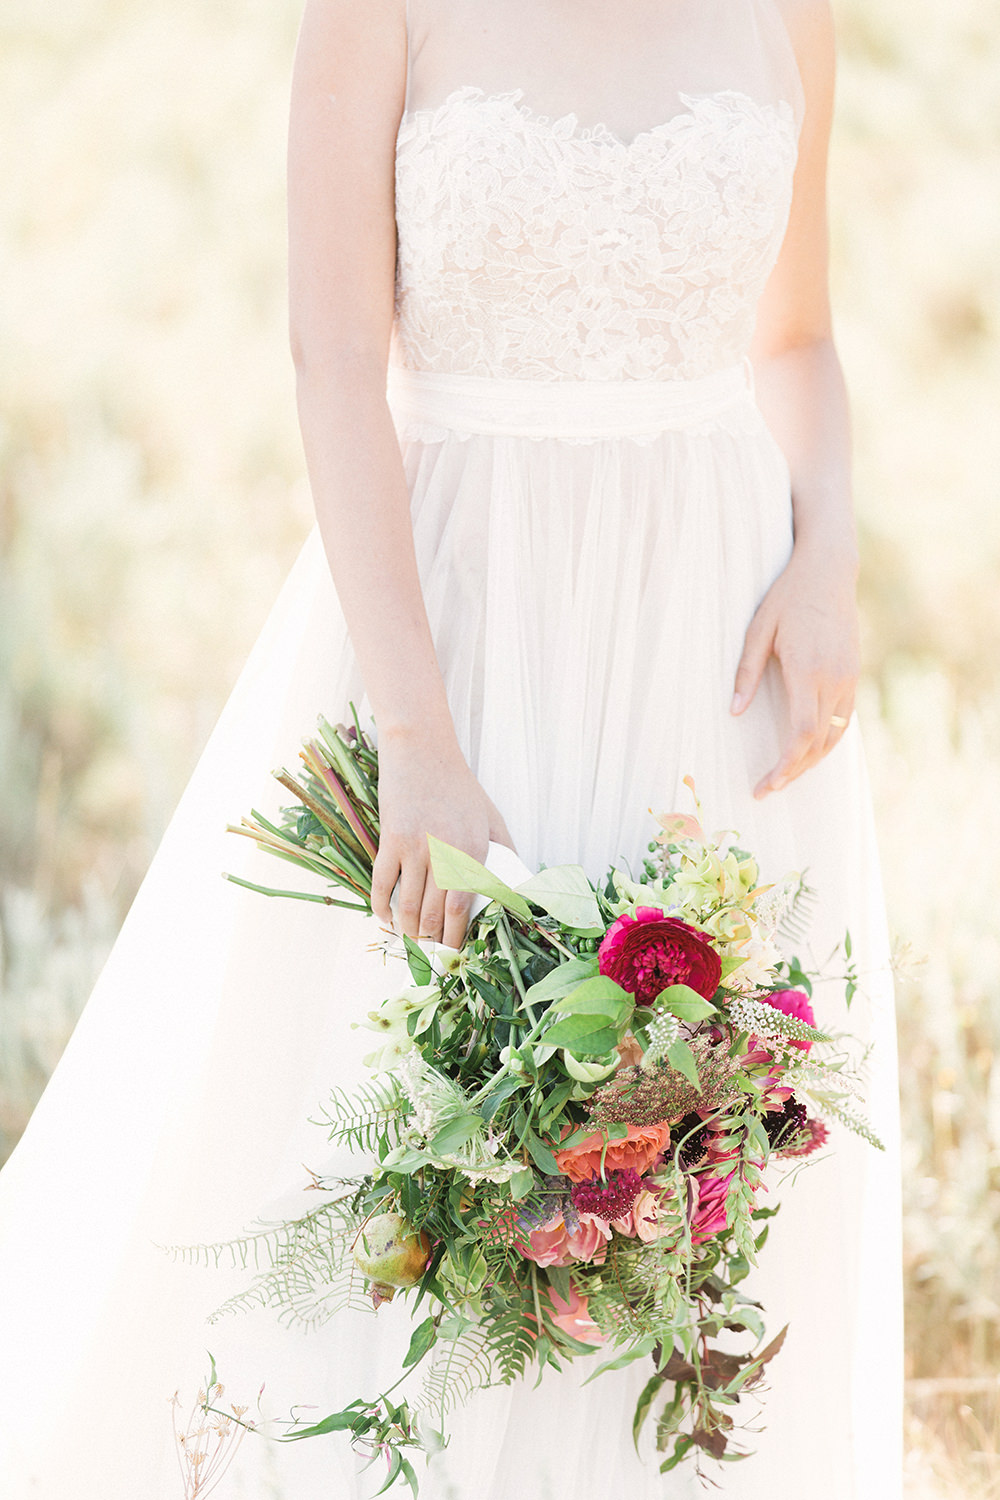 romantic wedding bouquets - photo by Gideon Photography http://ruffledblog.com/botanical-wedding-ideas-in-the-mountains-of-southern-utah